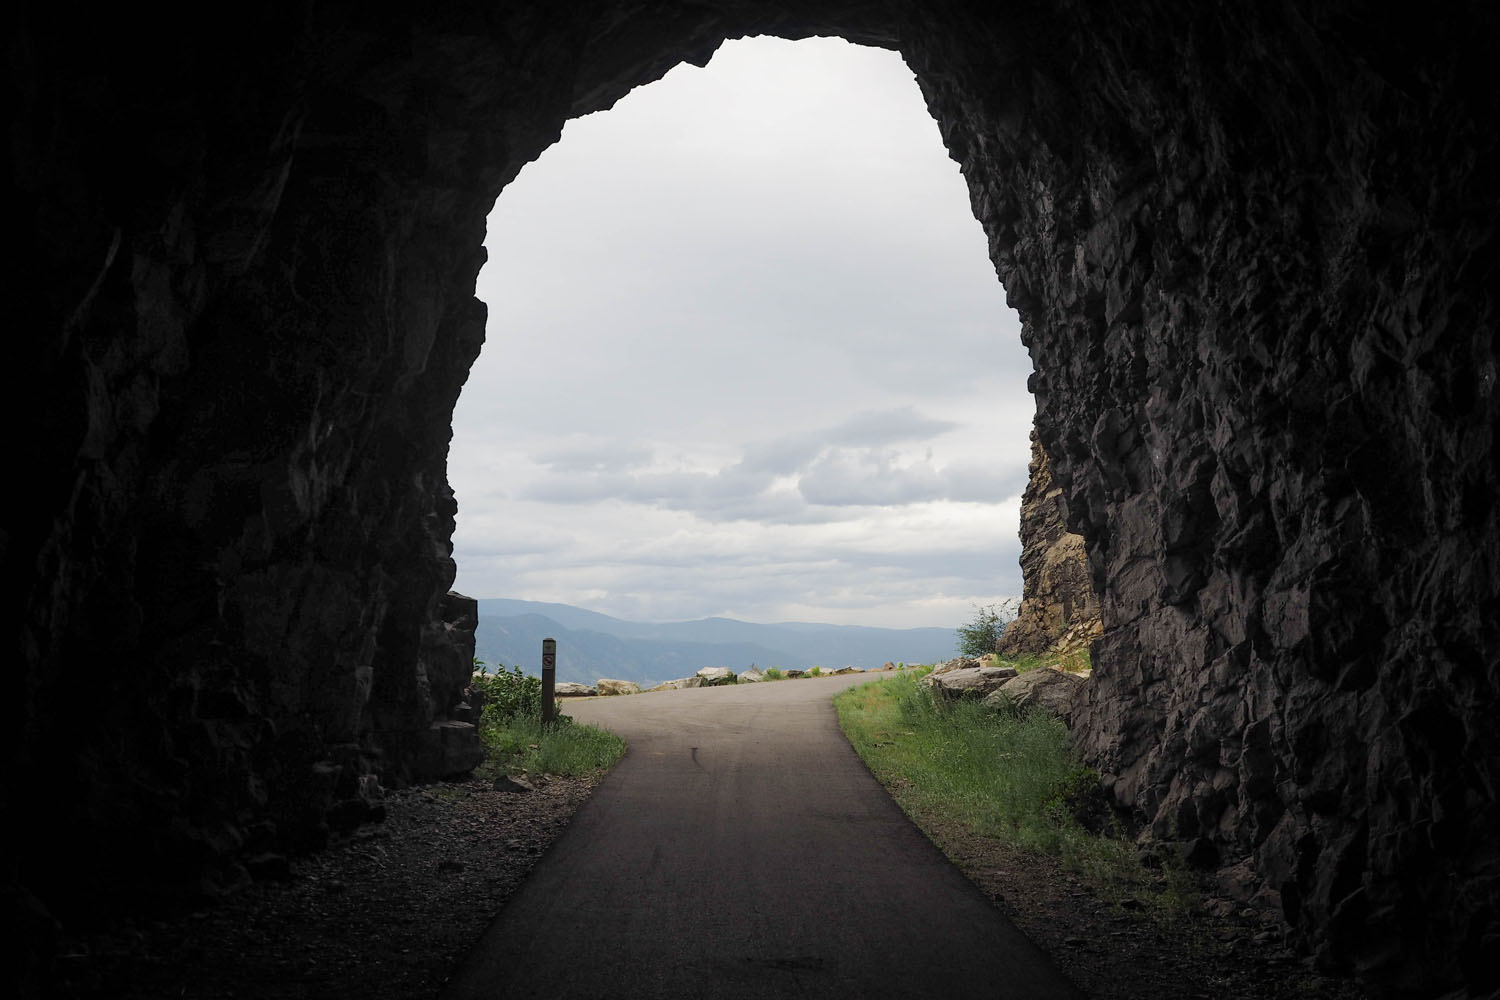 Looking through tunnel on bike trail. Looking out to hills and horizon in BC